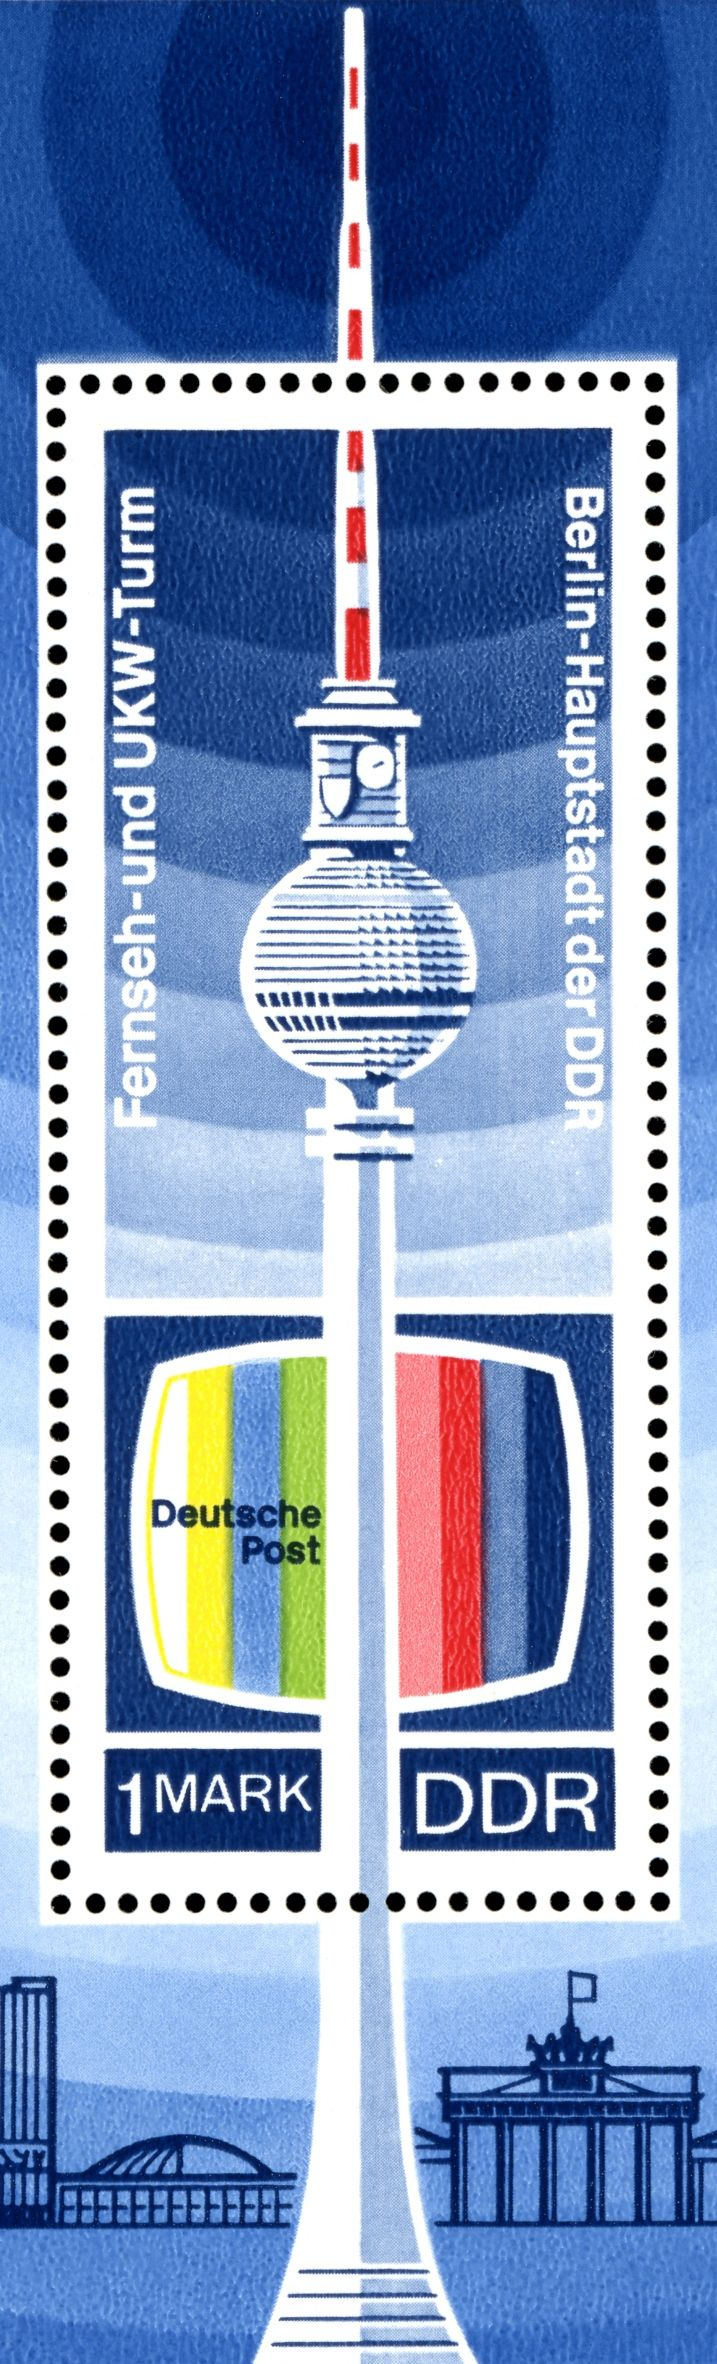 Berlin Television Tower - original GDR Stamp More information on Berlin: visitBerlin.com